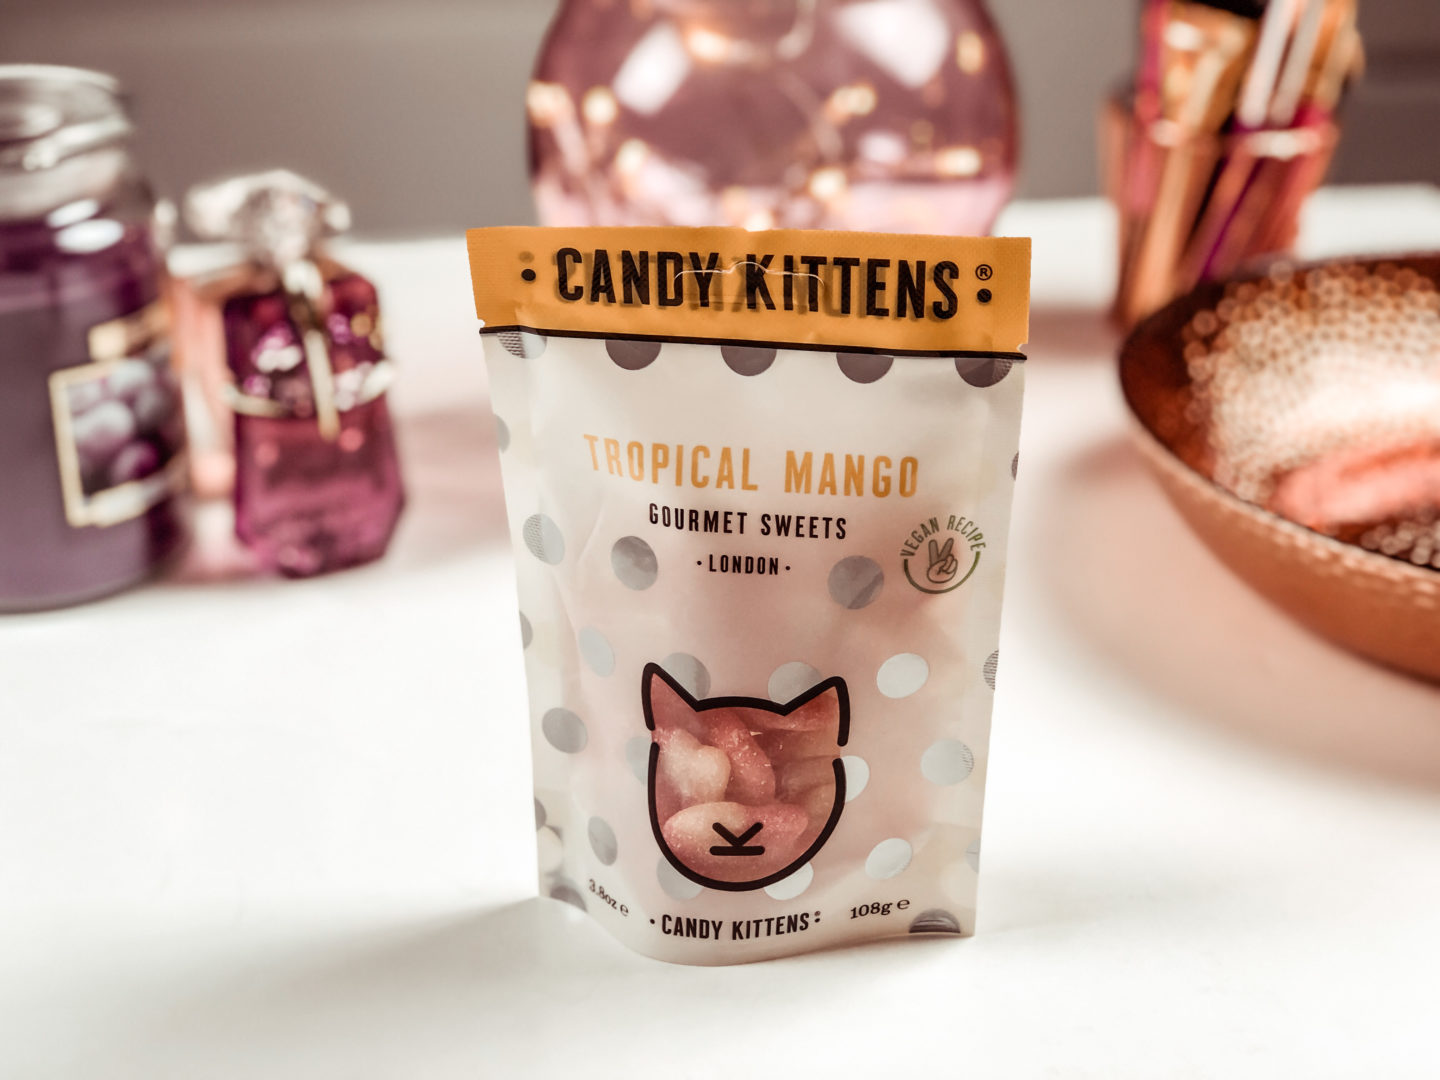 Candy Kittens in Tropical Mango - December 2019 Degusta Box